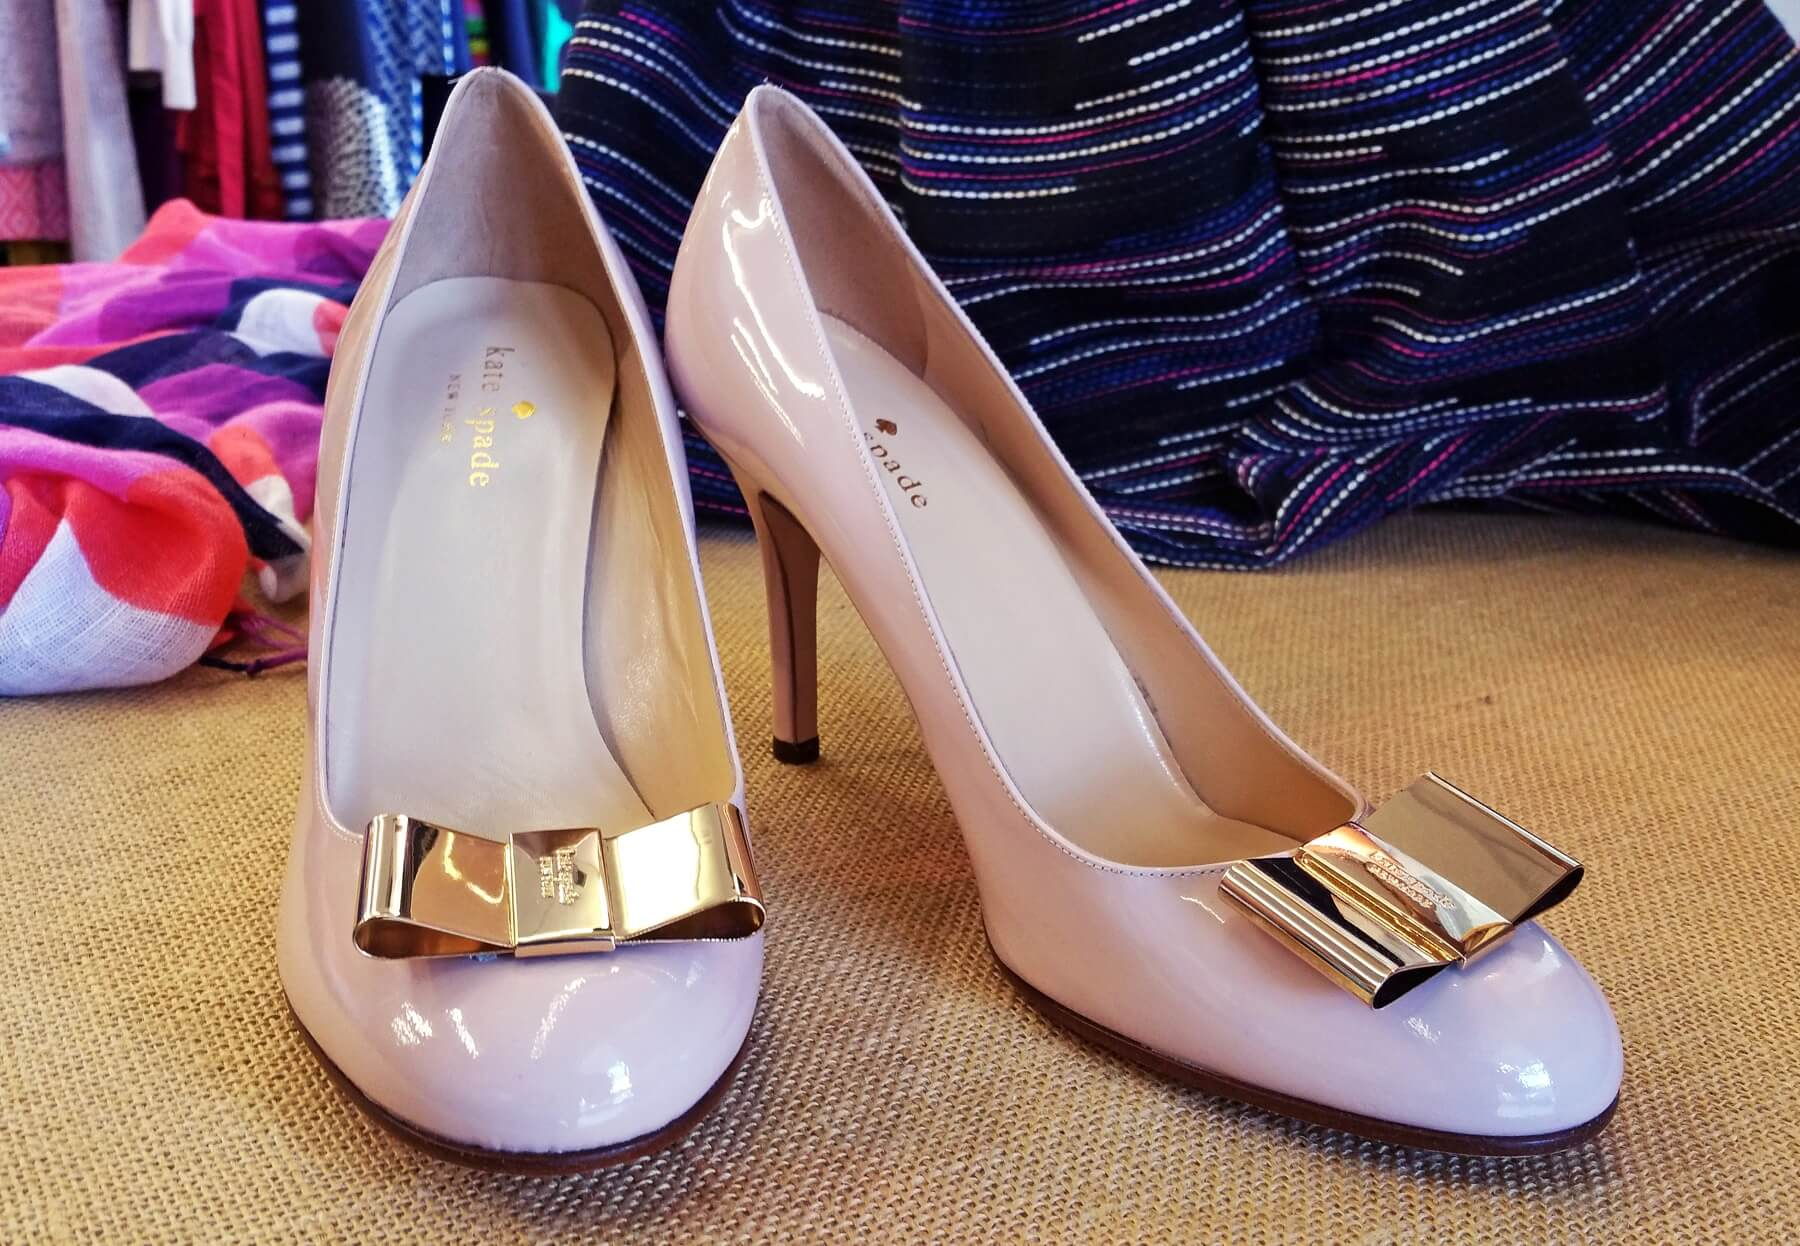 Kate Spade pumps, $55.50, at Second Hand Rose